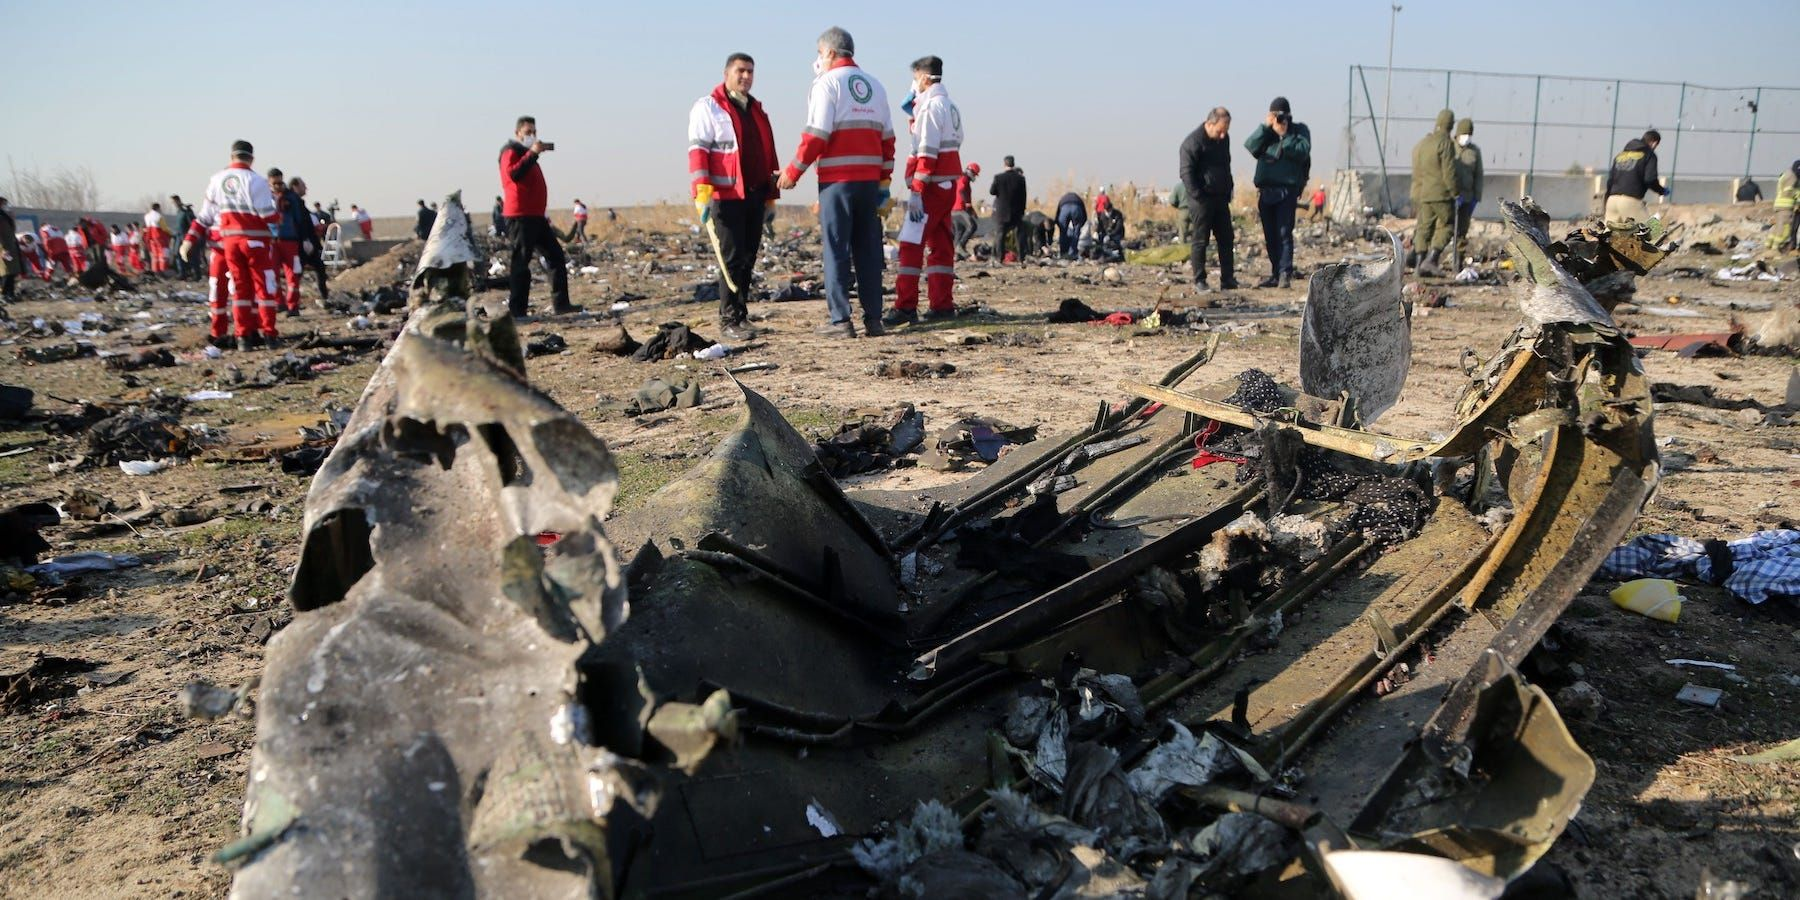 Ukraine knew Flight 752 had been shot down, but it was careful not to antagonize Iran